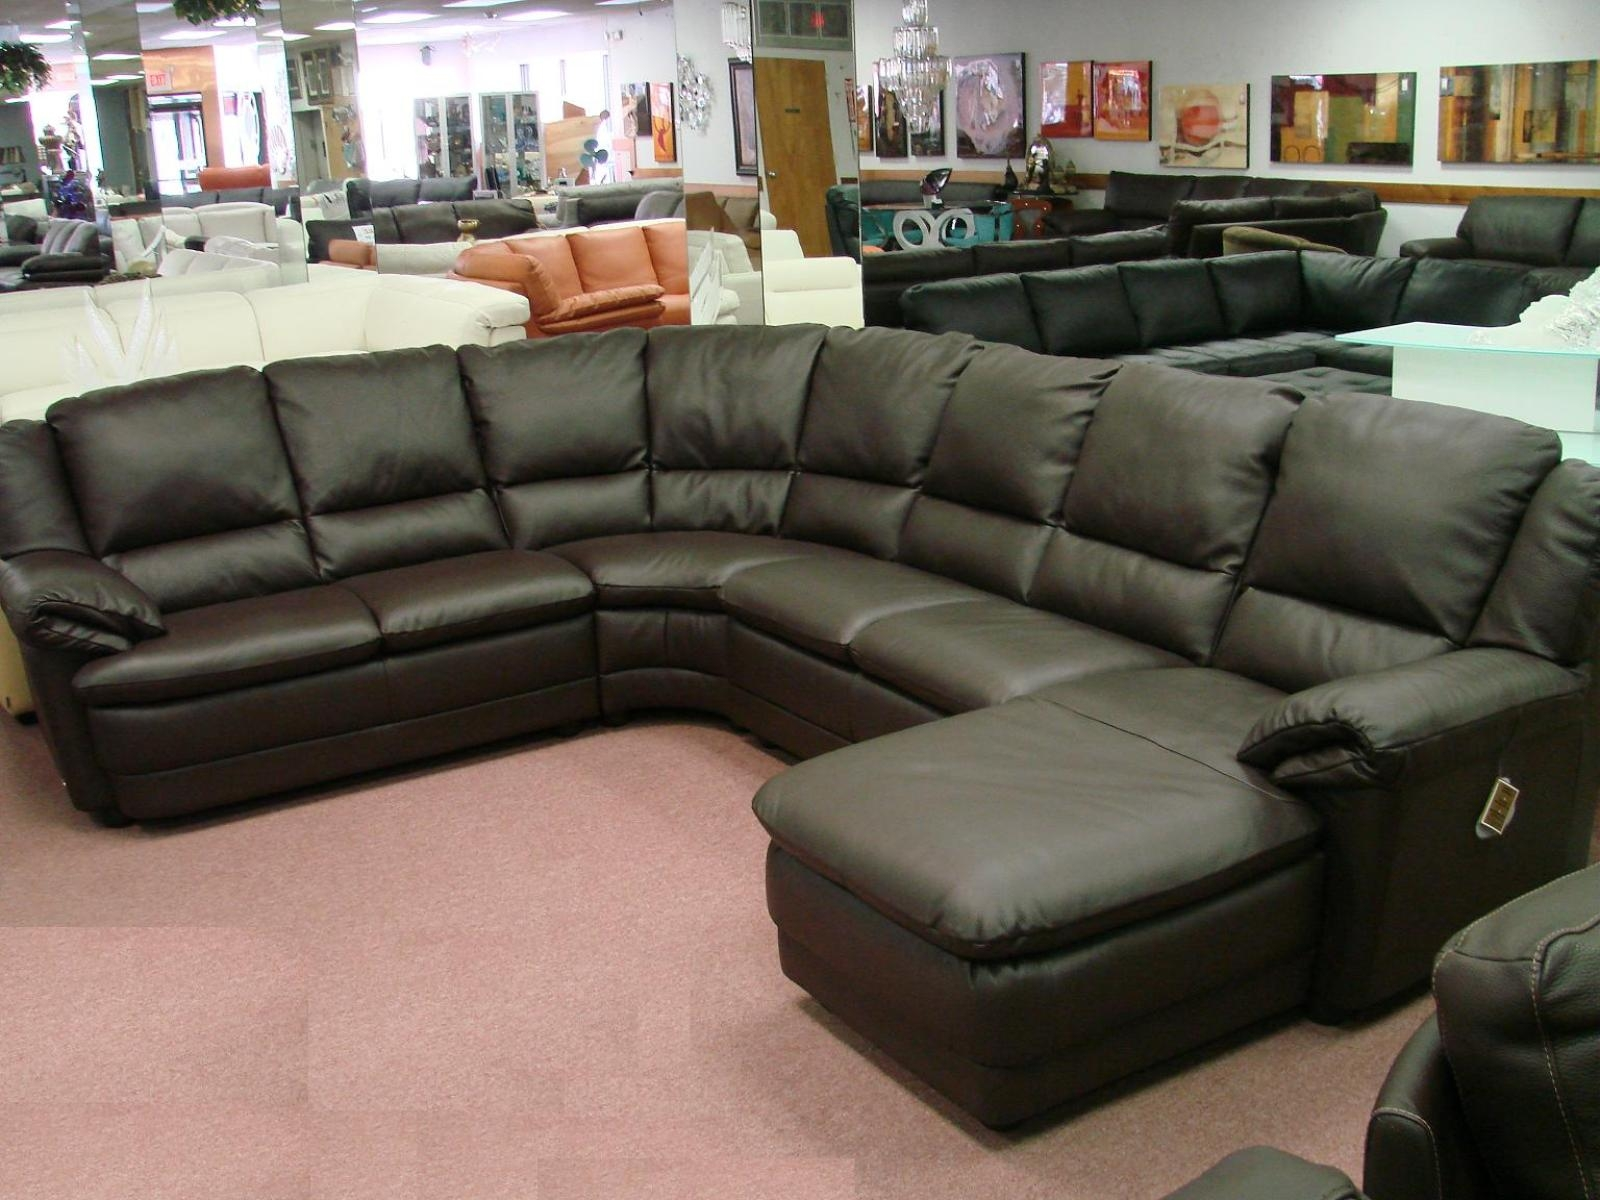 Sofa 9 Awesome Leather Sofa Sectionals On Sale Wj21 For Closeout Sectional Sofas (Image 12 of 15)